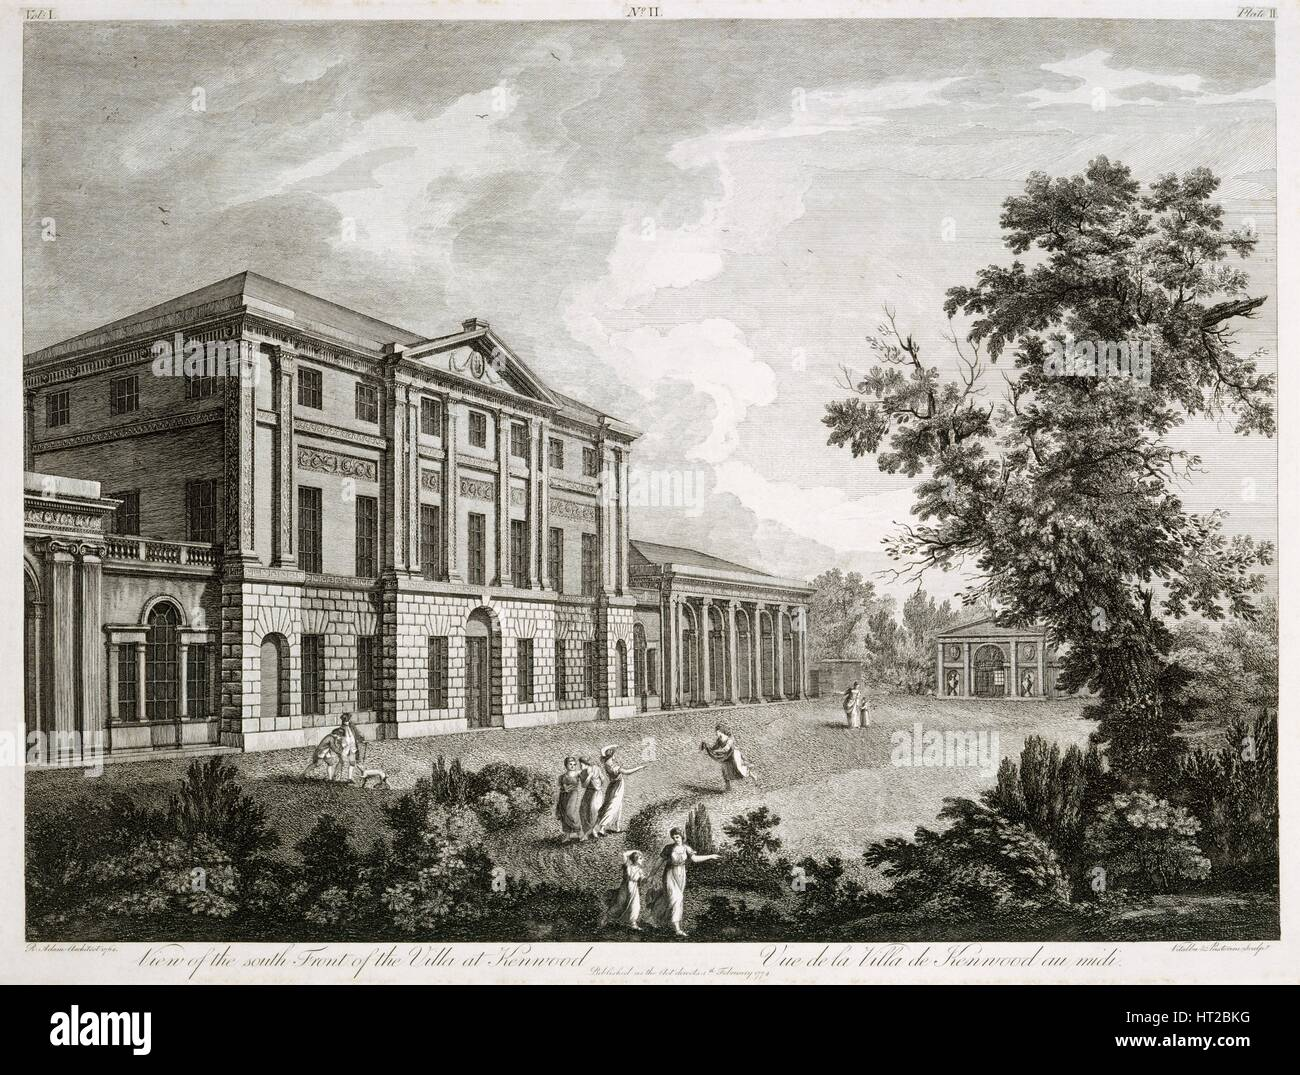 'View of the South Front of the Villa at Kenwood', late 18th or early 19th century. Artists: Giovanni Vitalba, - Stock Image